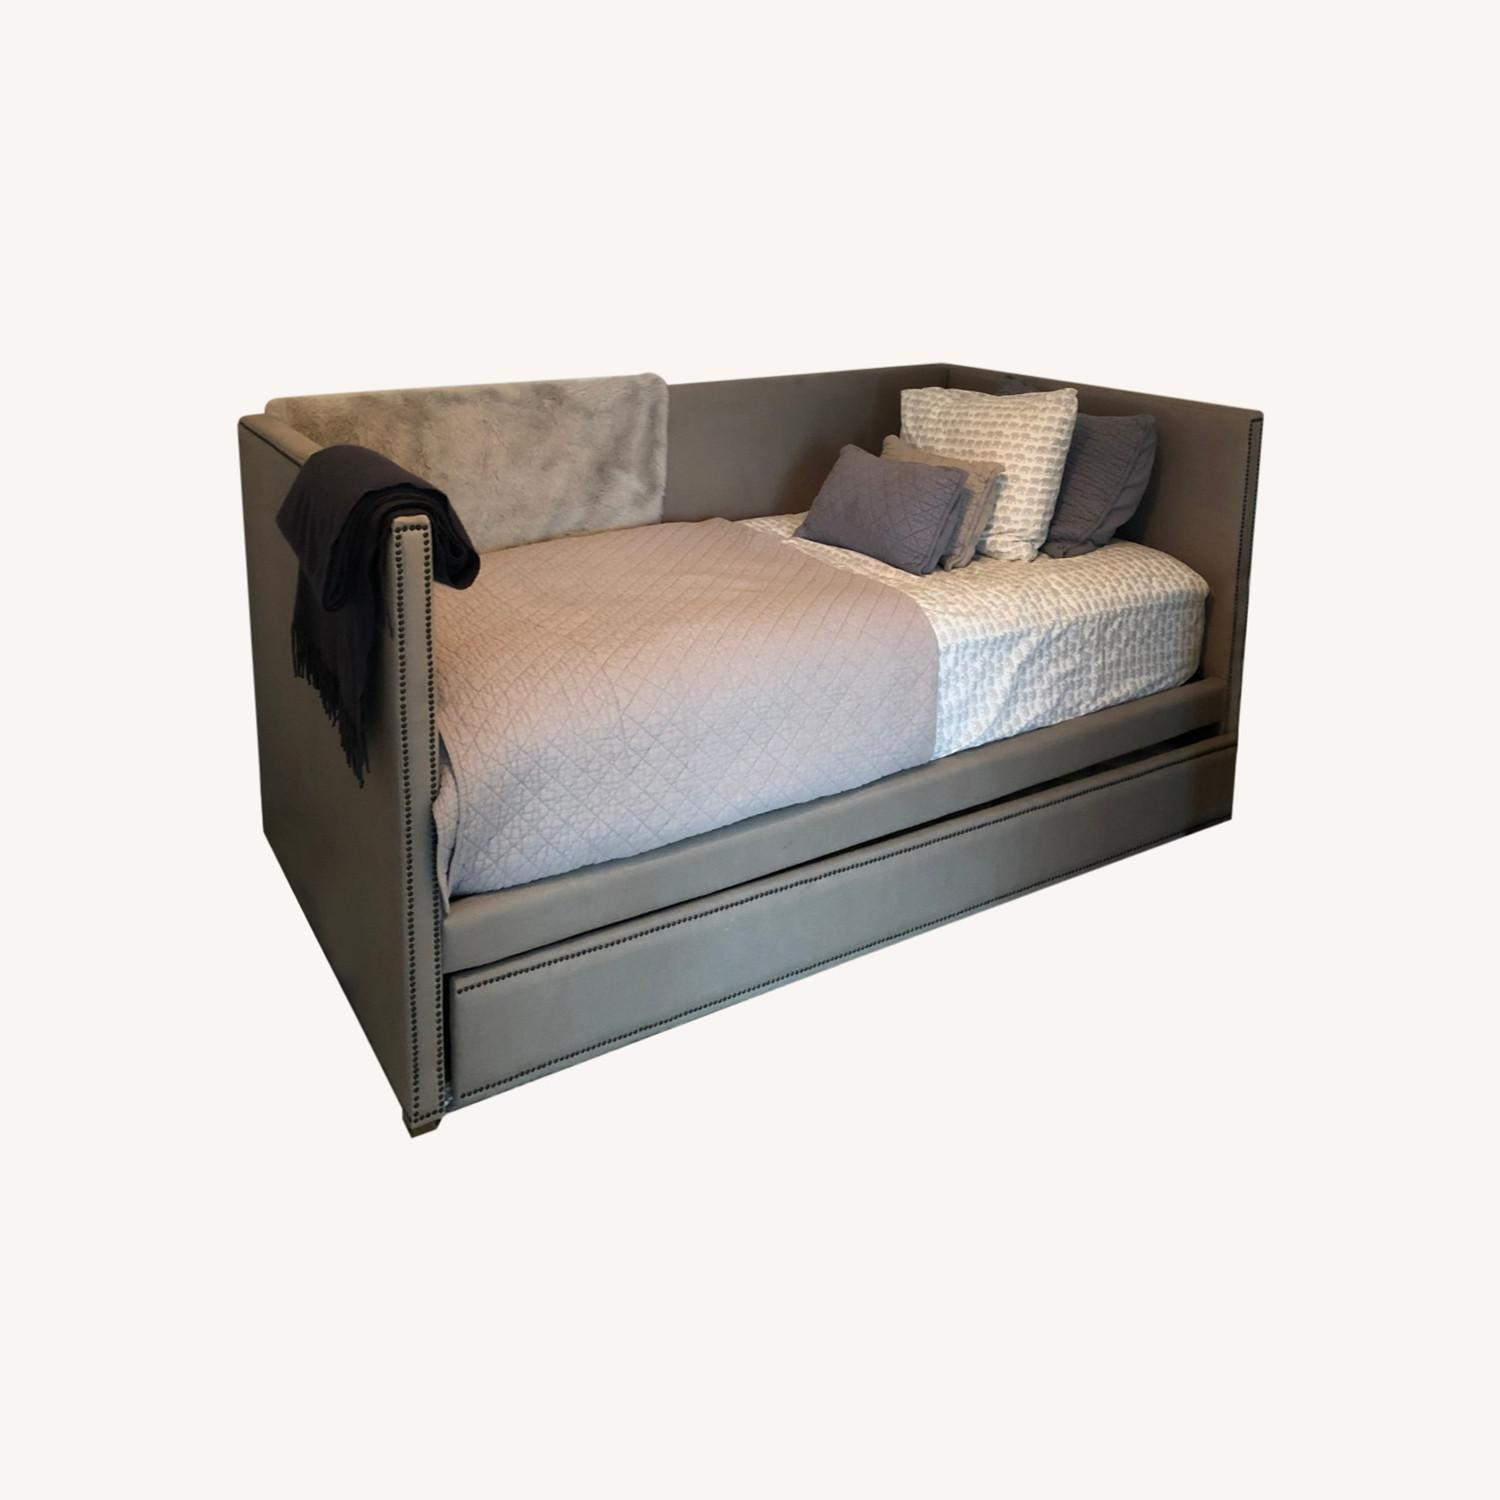 Restoration Hardware Twin Day Bed with Trundle - image-0